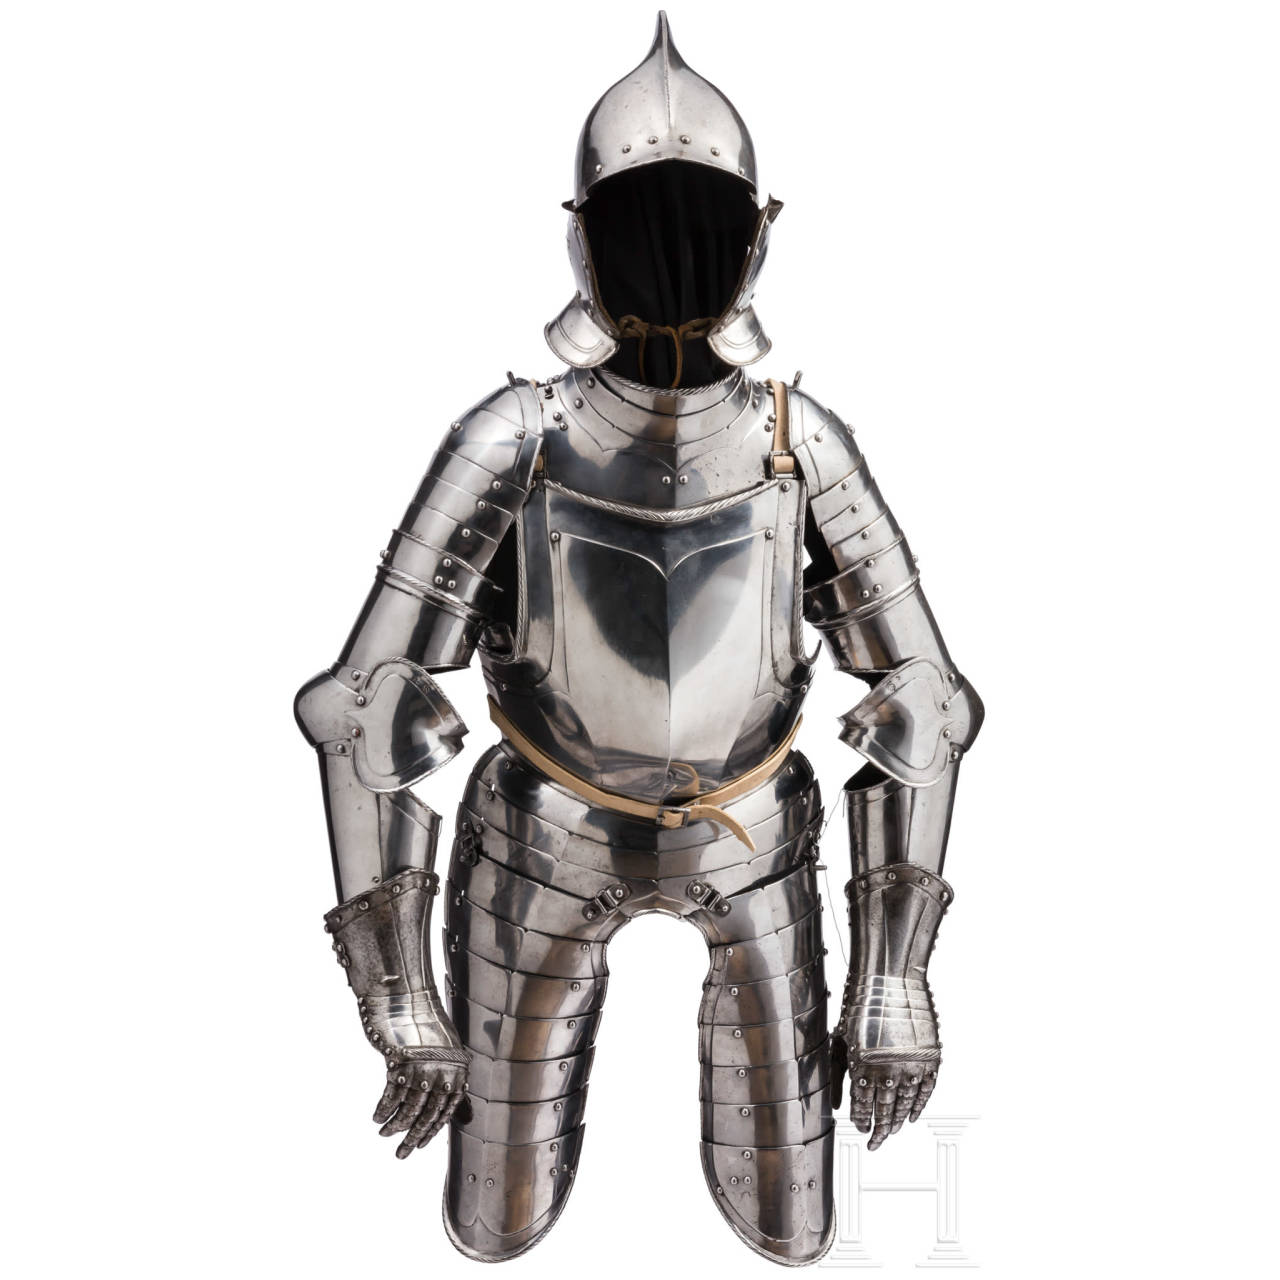 A polished German suit of three-quarters armour in quality befitting an officer, Nuremberg, circa 1560